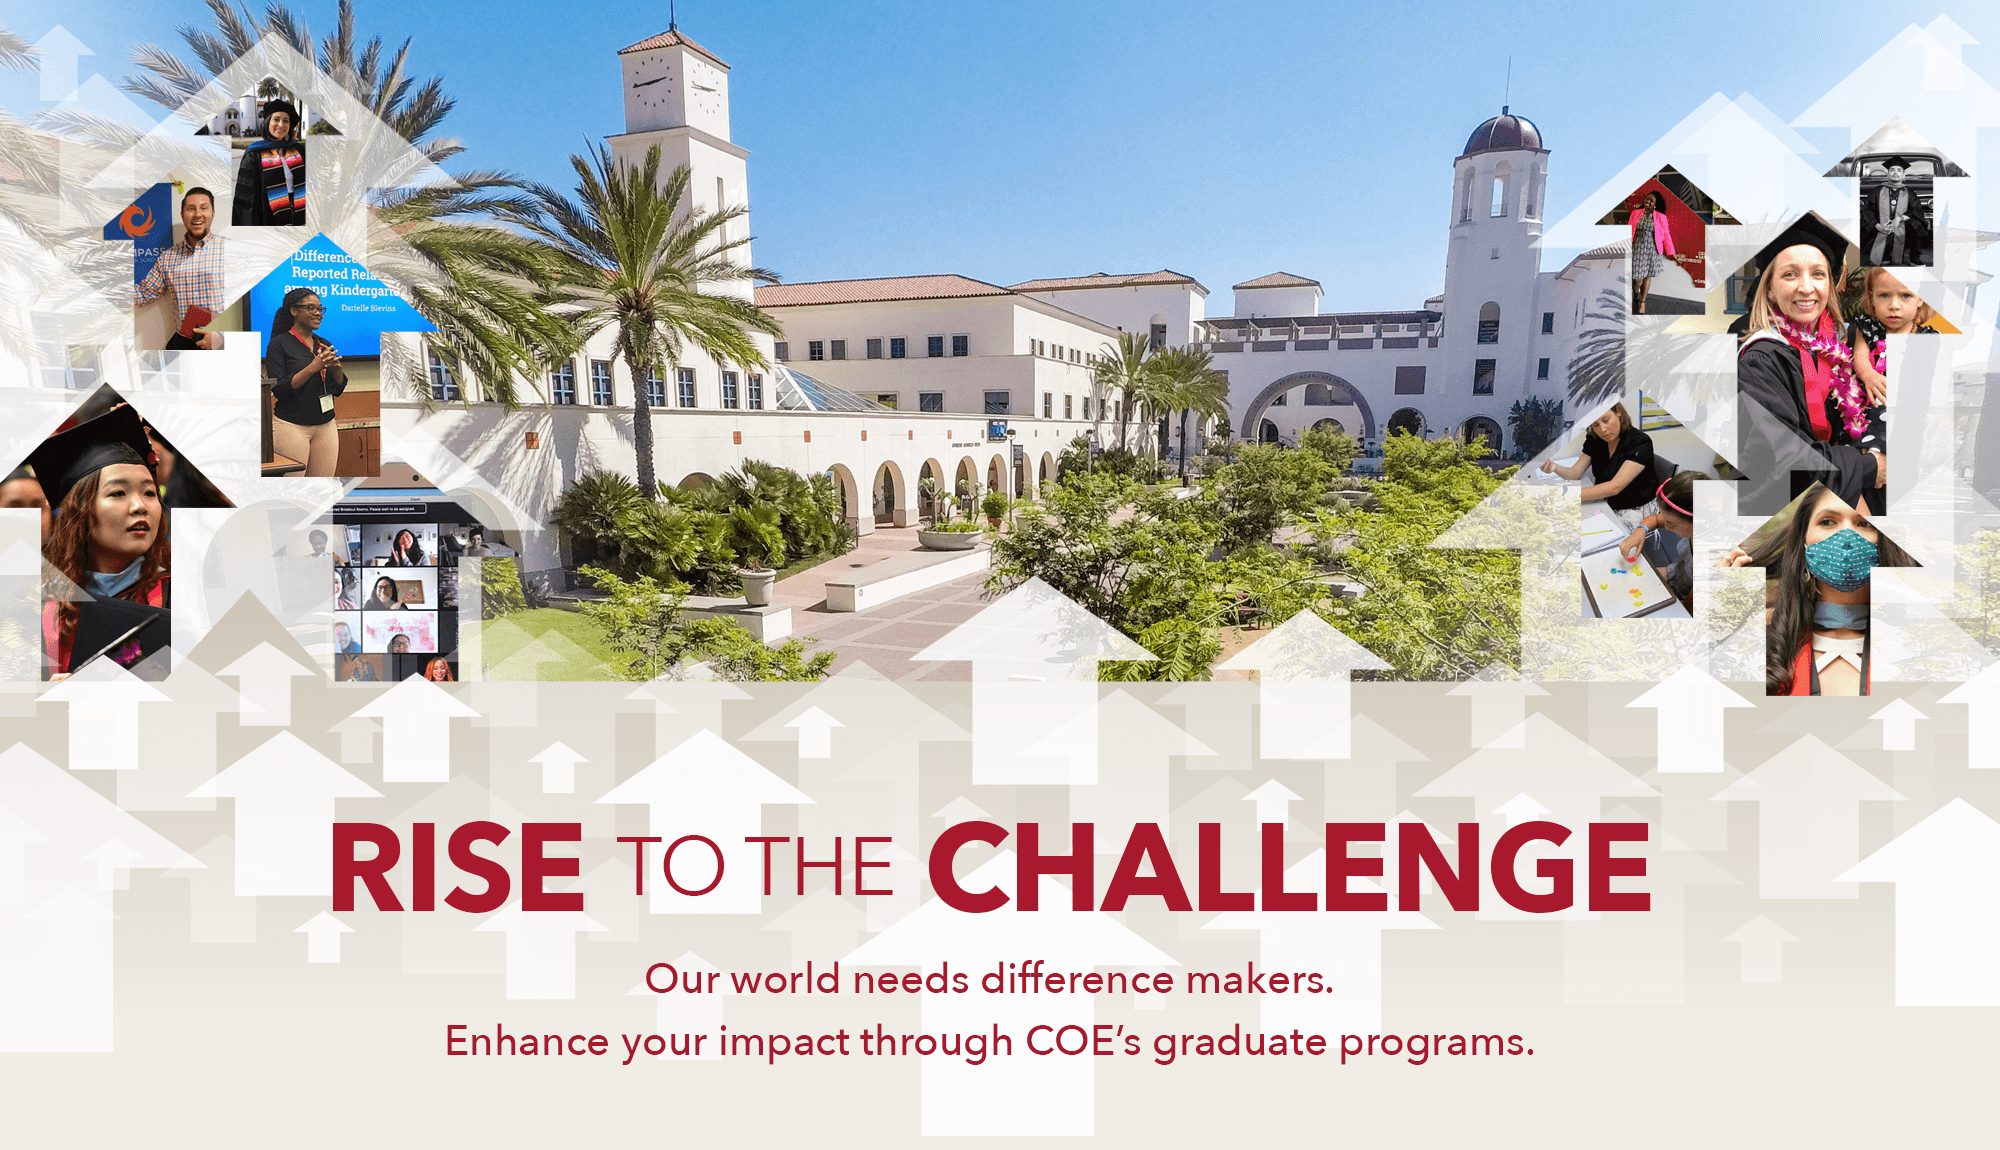 Rise to the Challenge. Our world needs difference makers. Enhance your impact through COE's graduate programs.